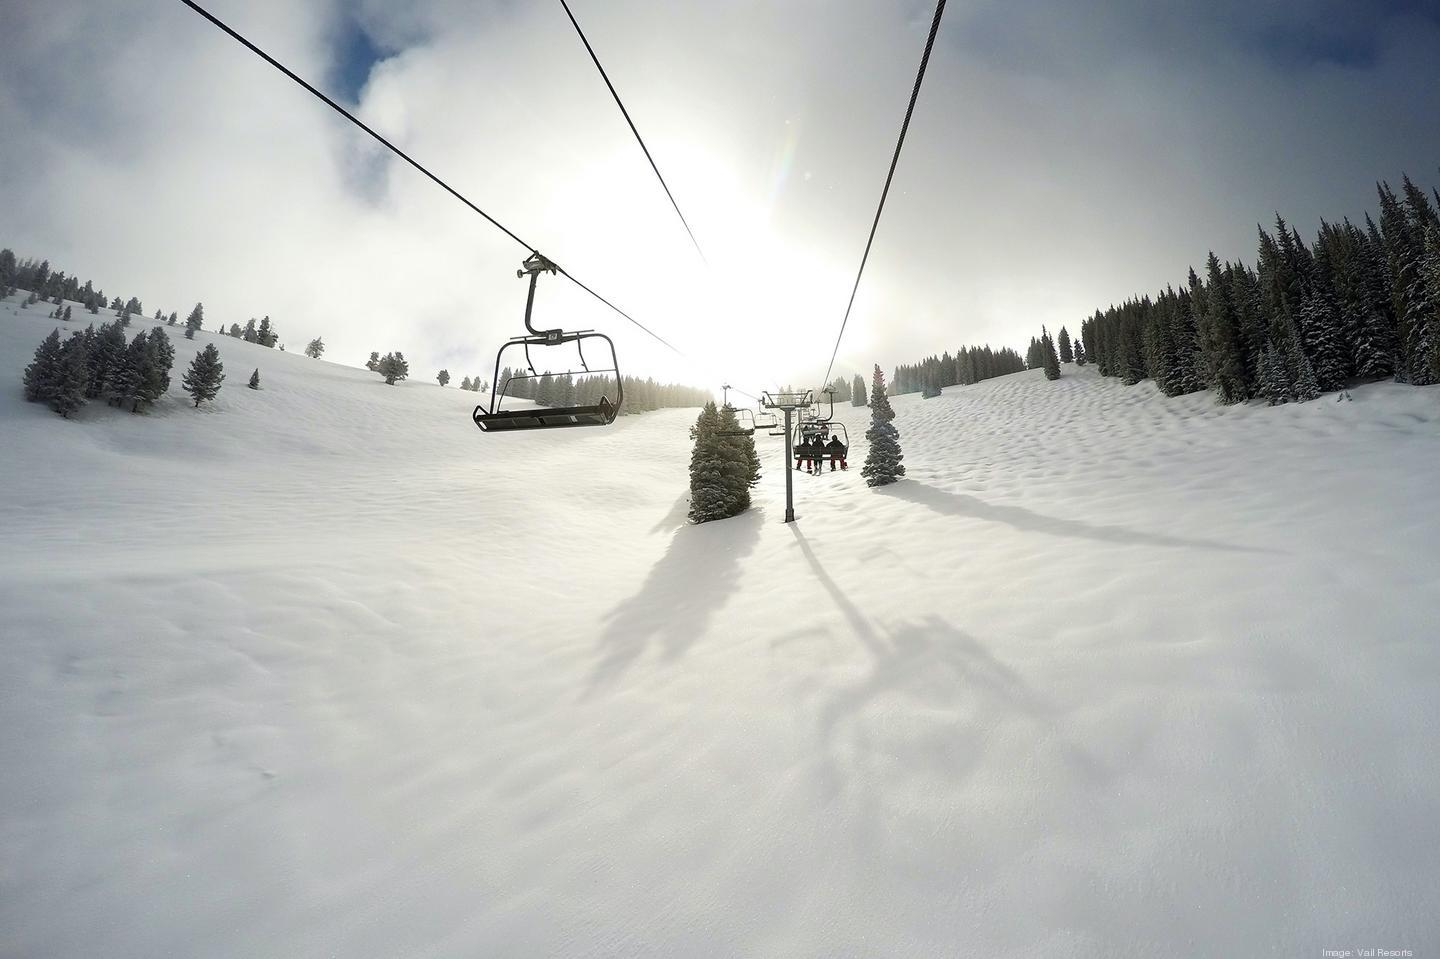 Vail Resorts season-pass sales rise nearly 70% following first price drop in 13 years